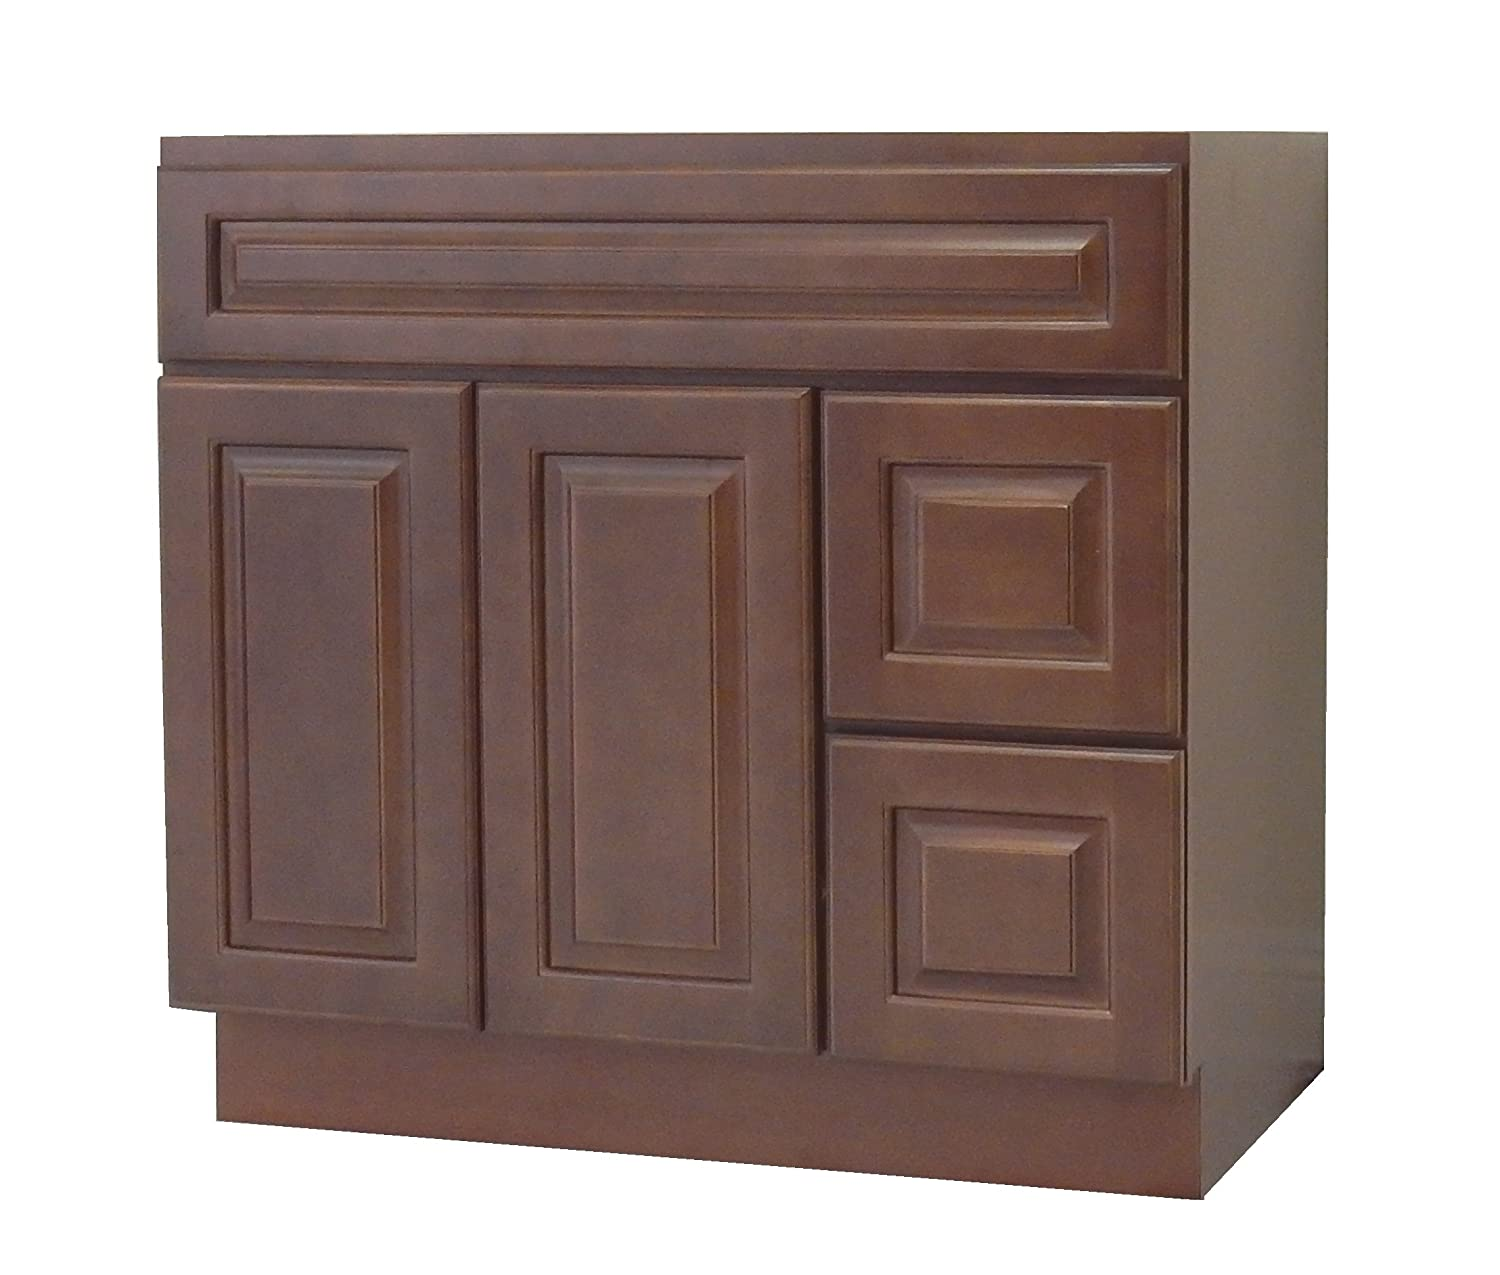 NGY CC-4221DR Chestnut Chocolate Vanity Cabinet Maple Wood - 42 L